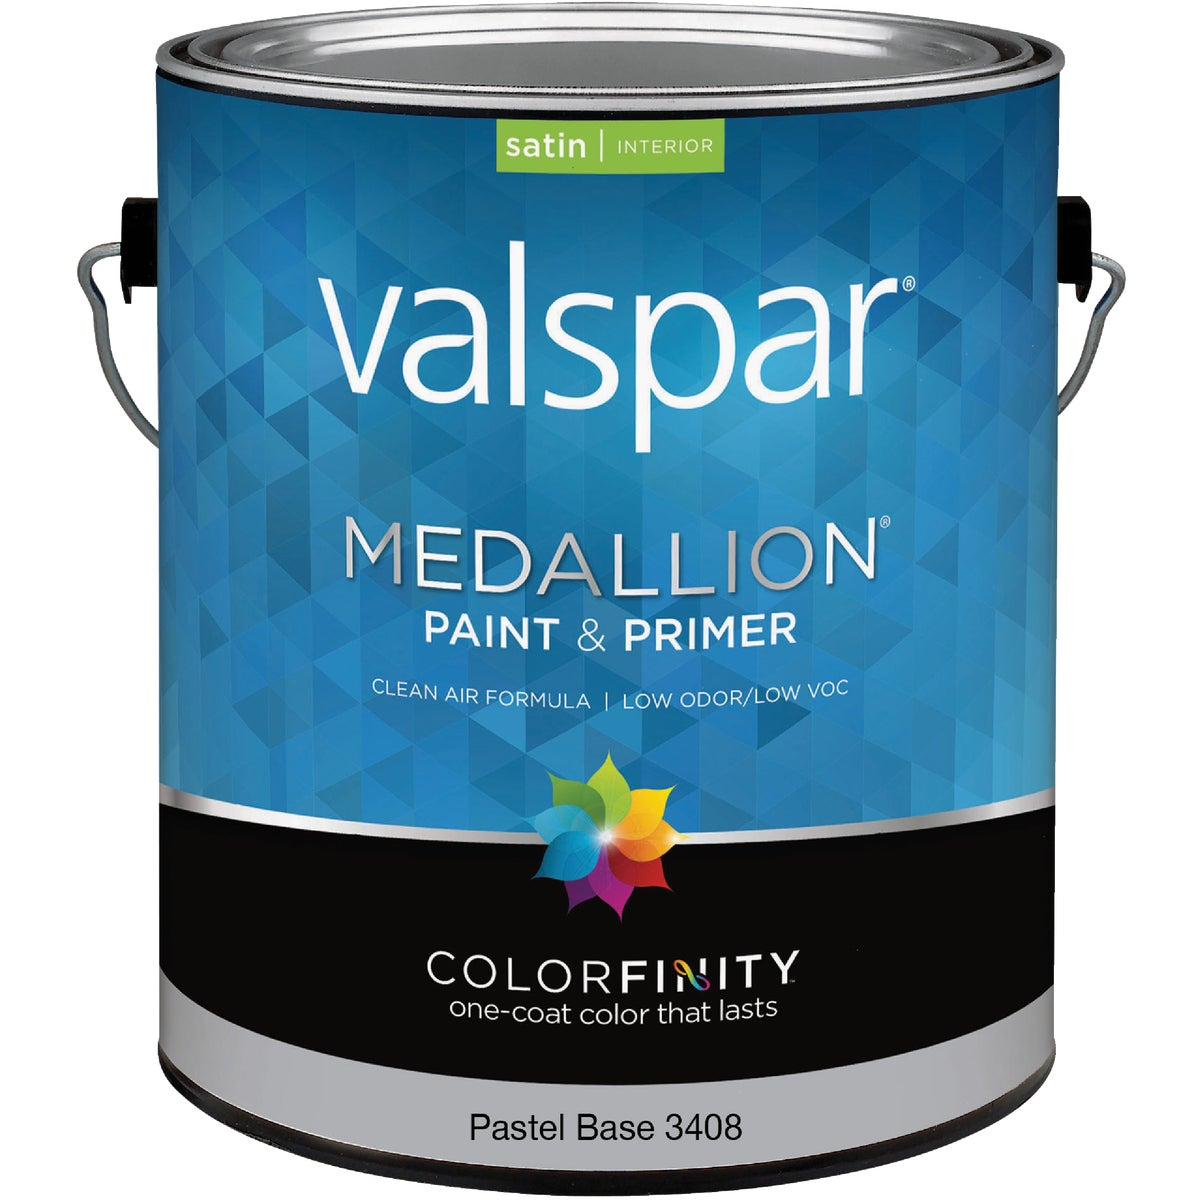 INT SAT PASTEL BS PAINT - 027.0003408.007 by Valspar Corp